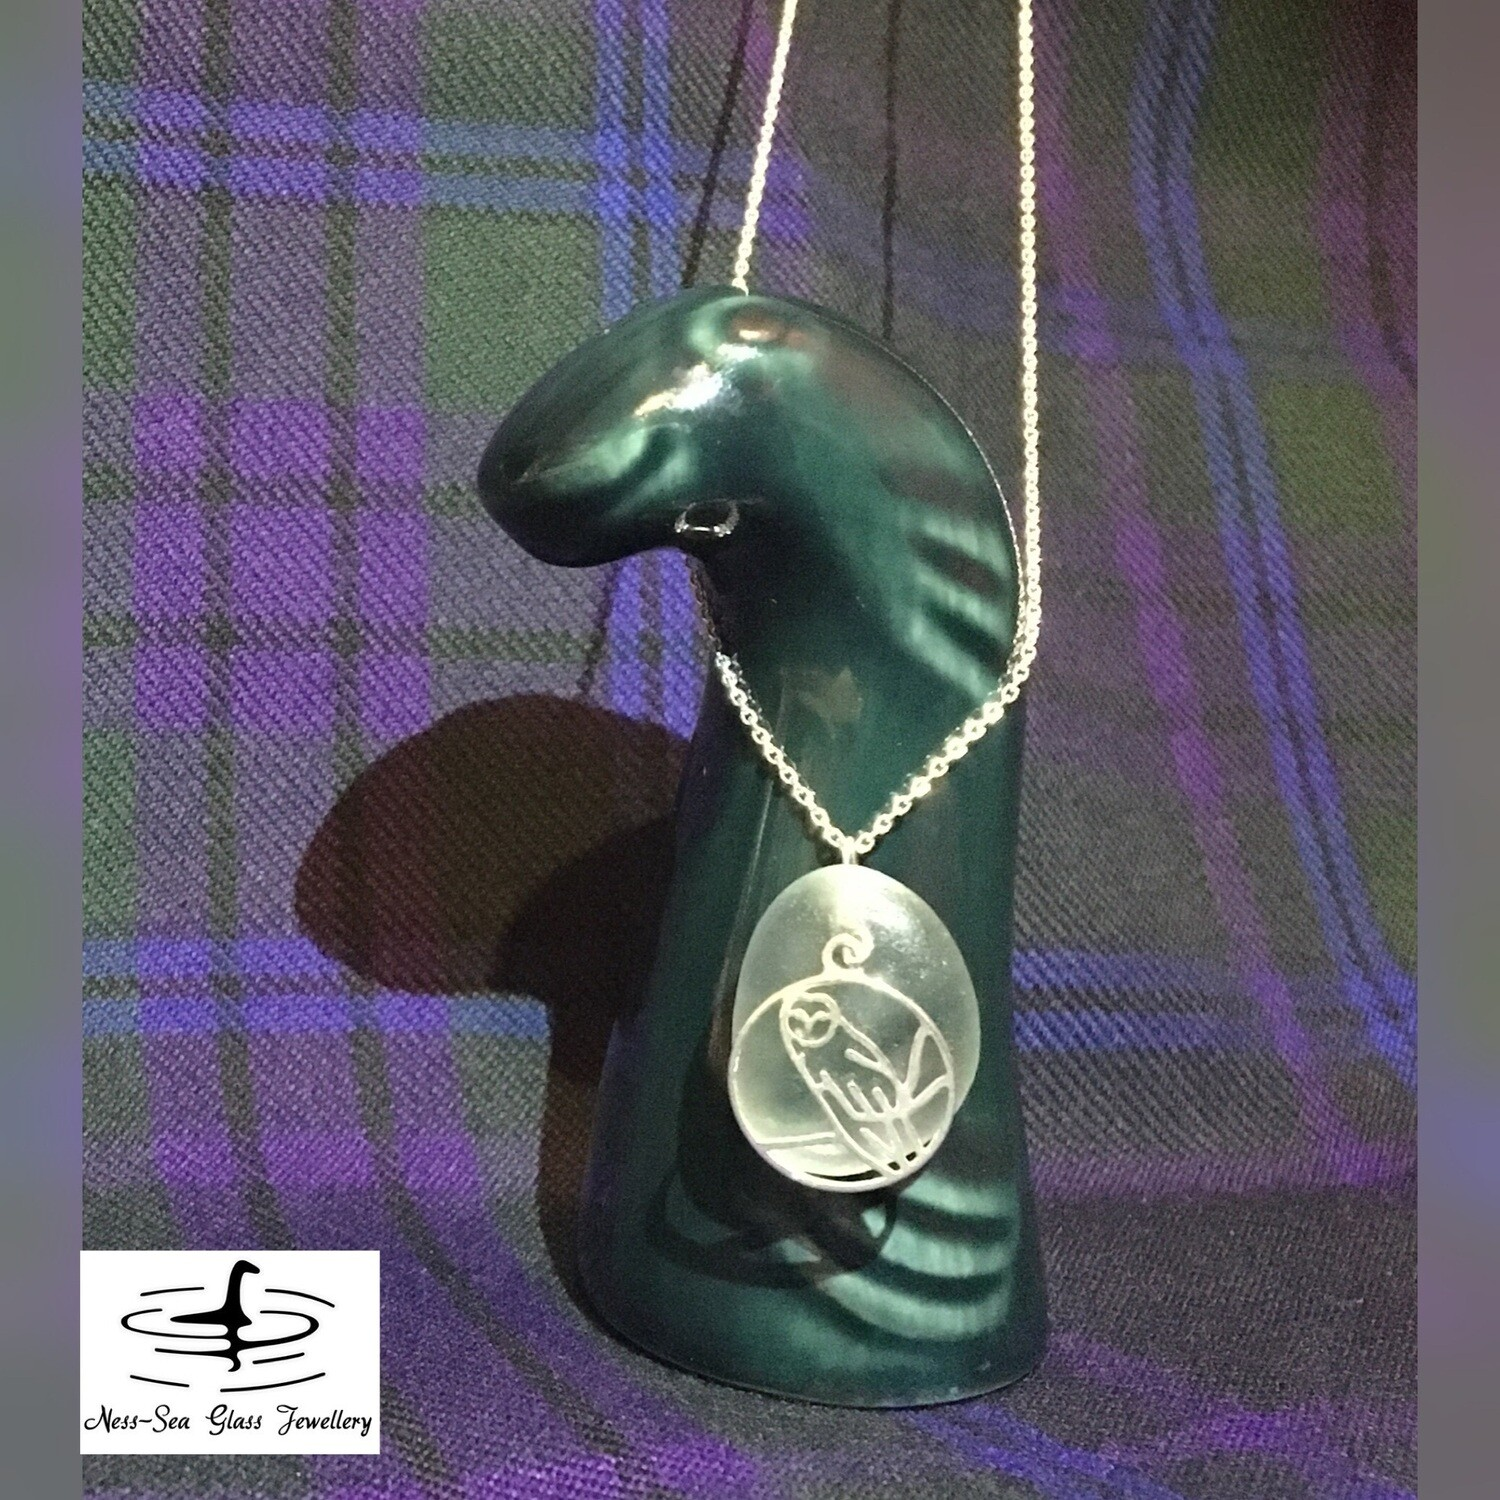 Pale Blue Loch Ness Sea Glass Necklace with Sterling Silver Owl design and Fine Sterling Silver Chain